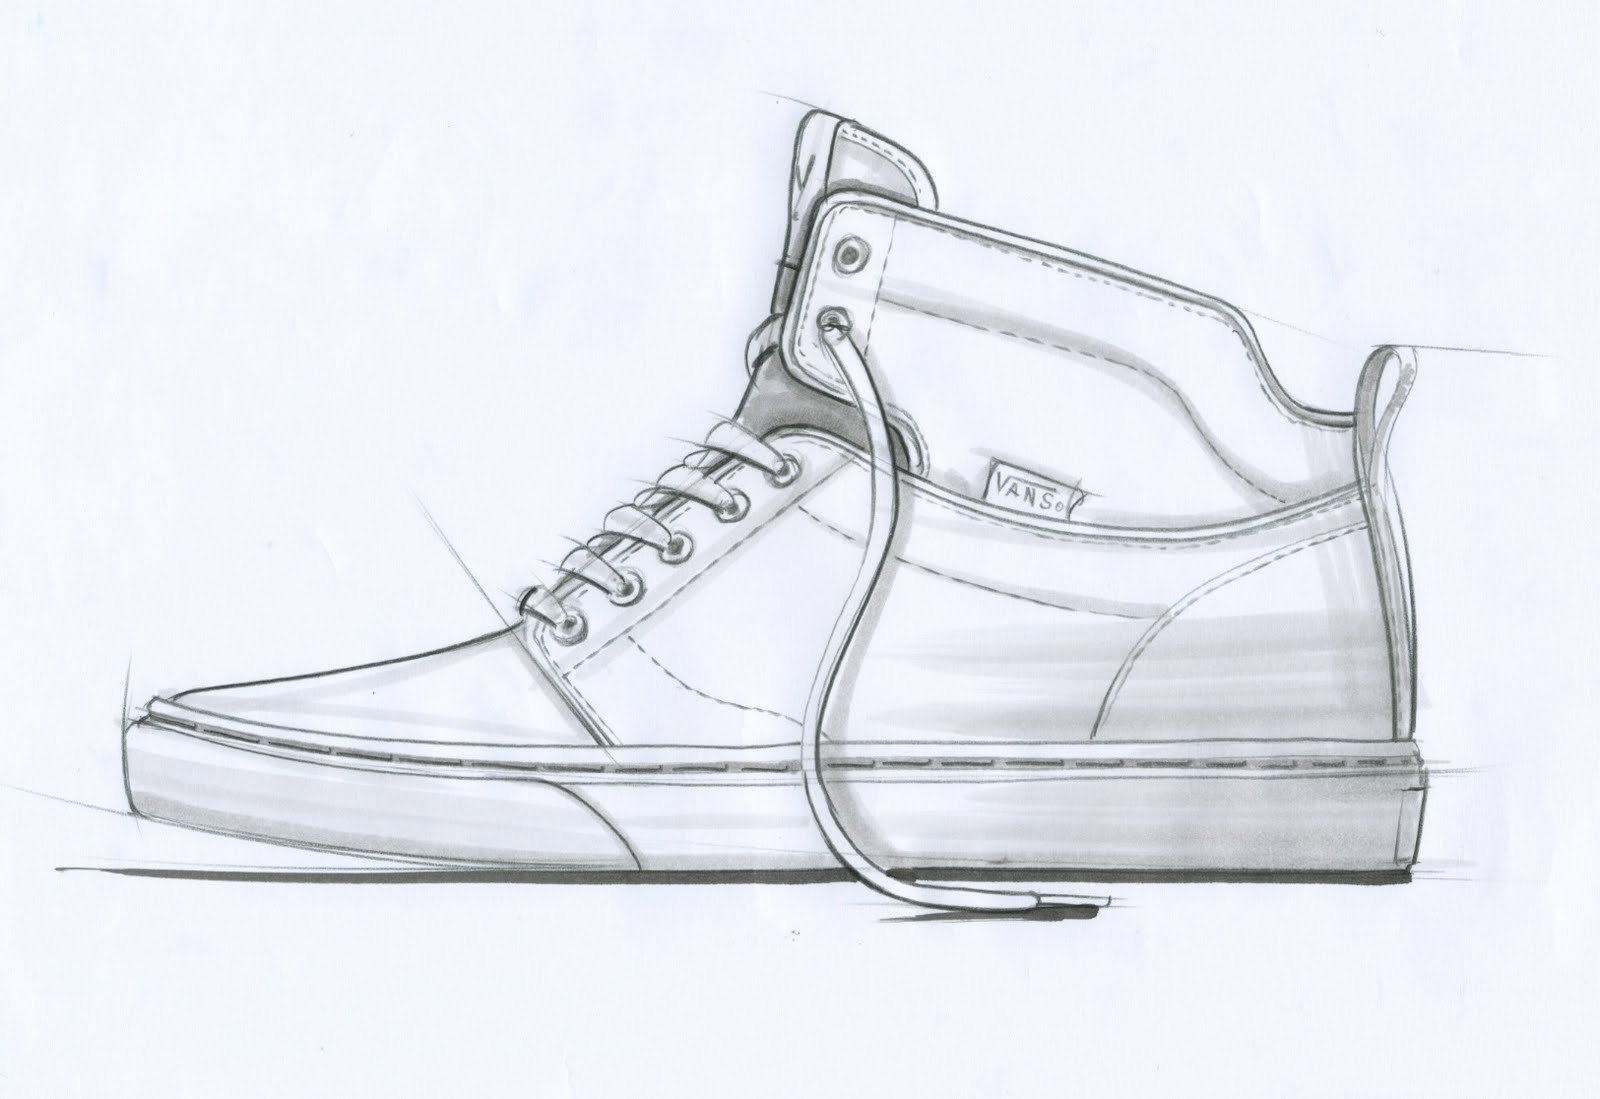 Drawn shoe vans logo To Shoes And How Van